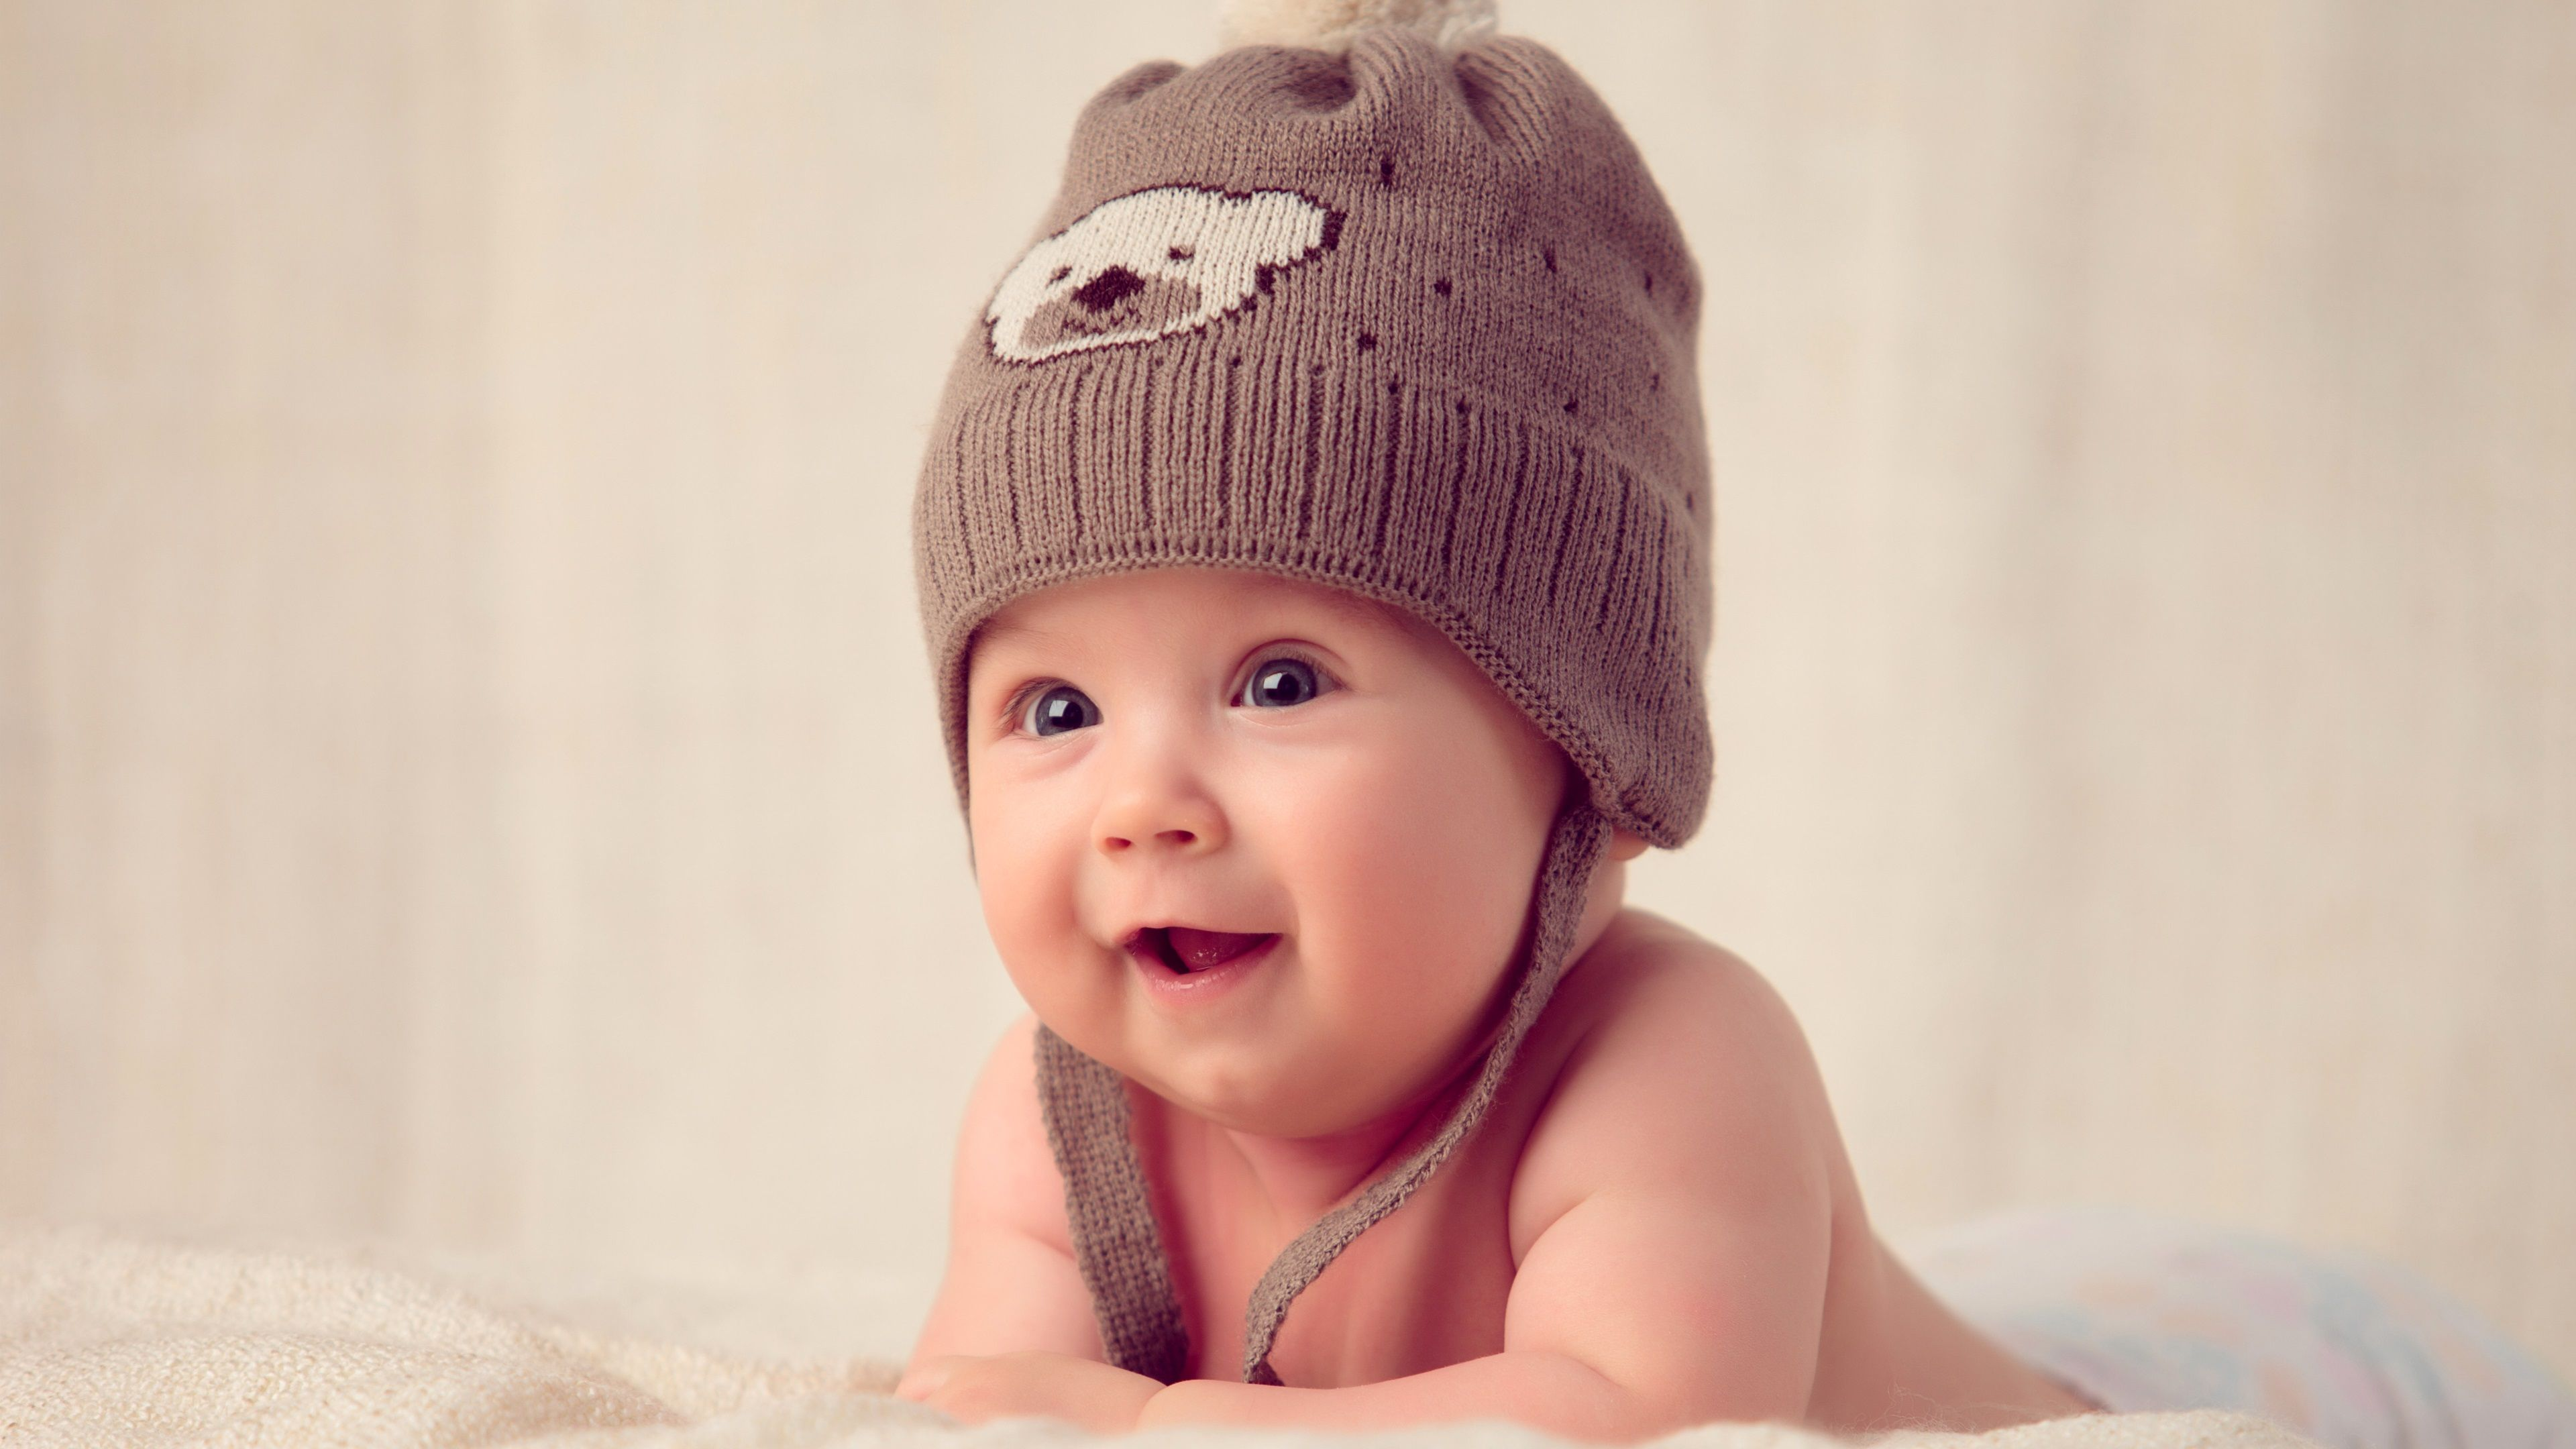 3840x2160 cute baby 4k wallpaper free download Baby